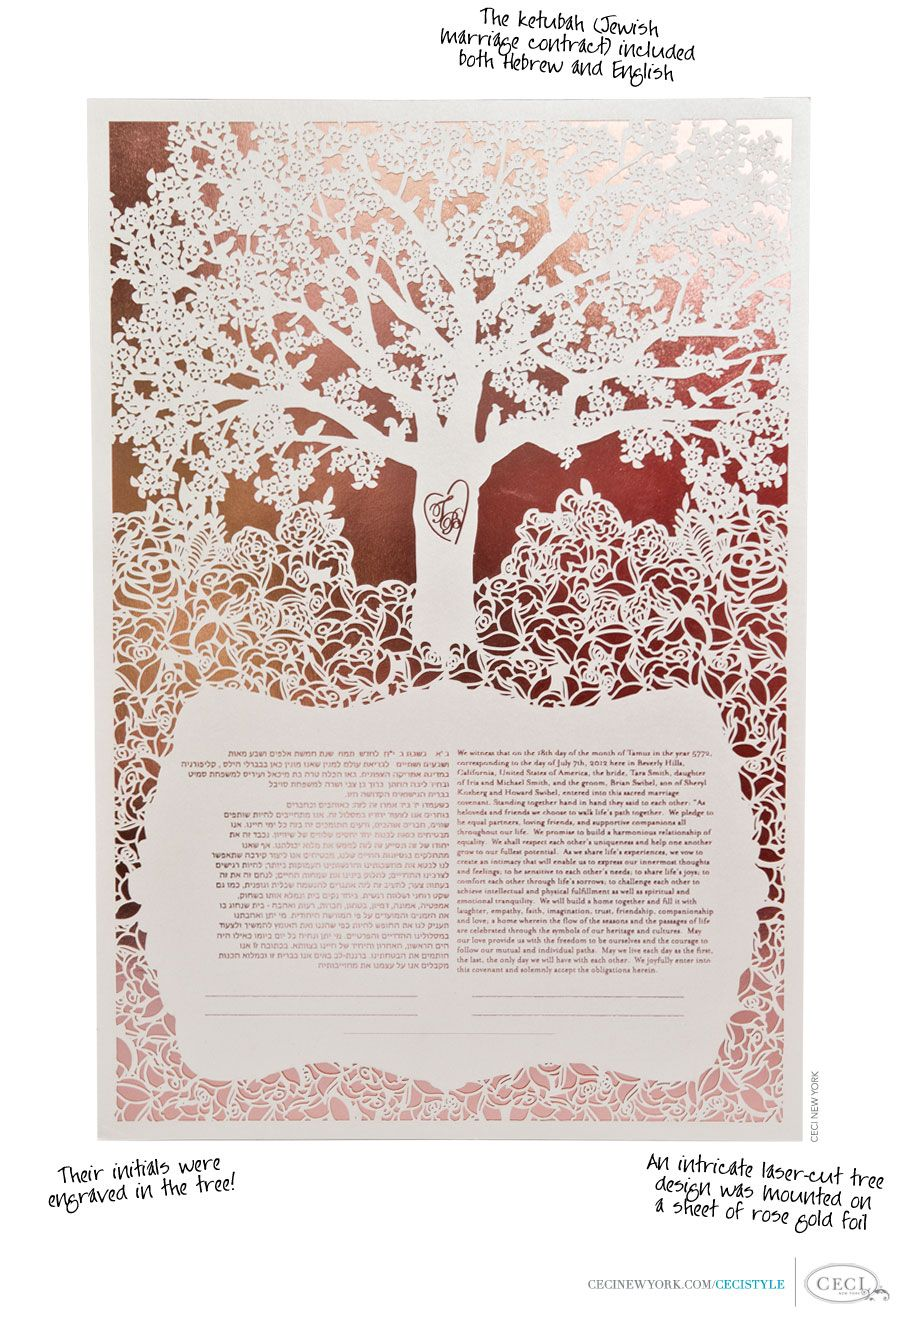 The Ketubah Jewish Marriage Contract Included Both Hebrew And English Ther Initials Were